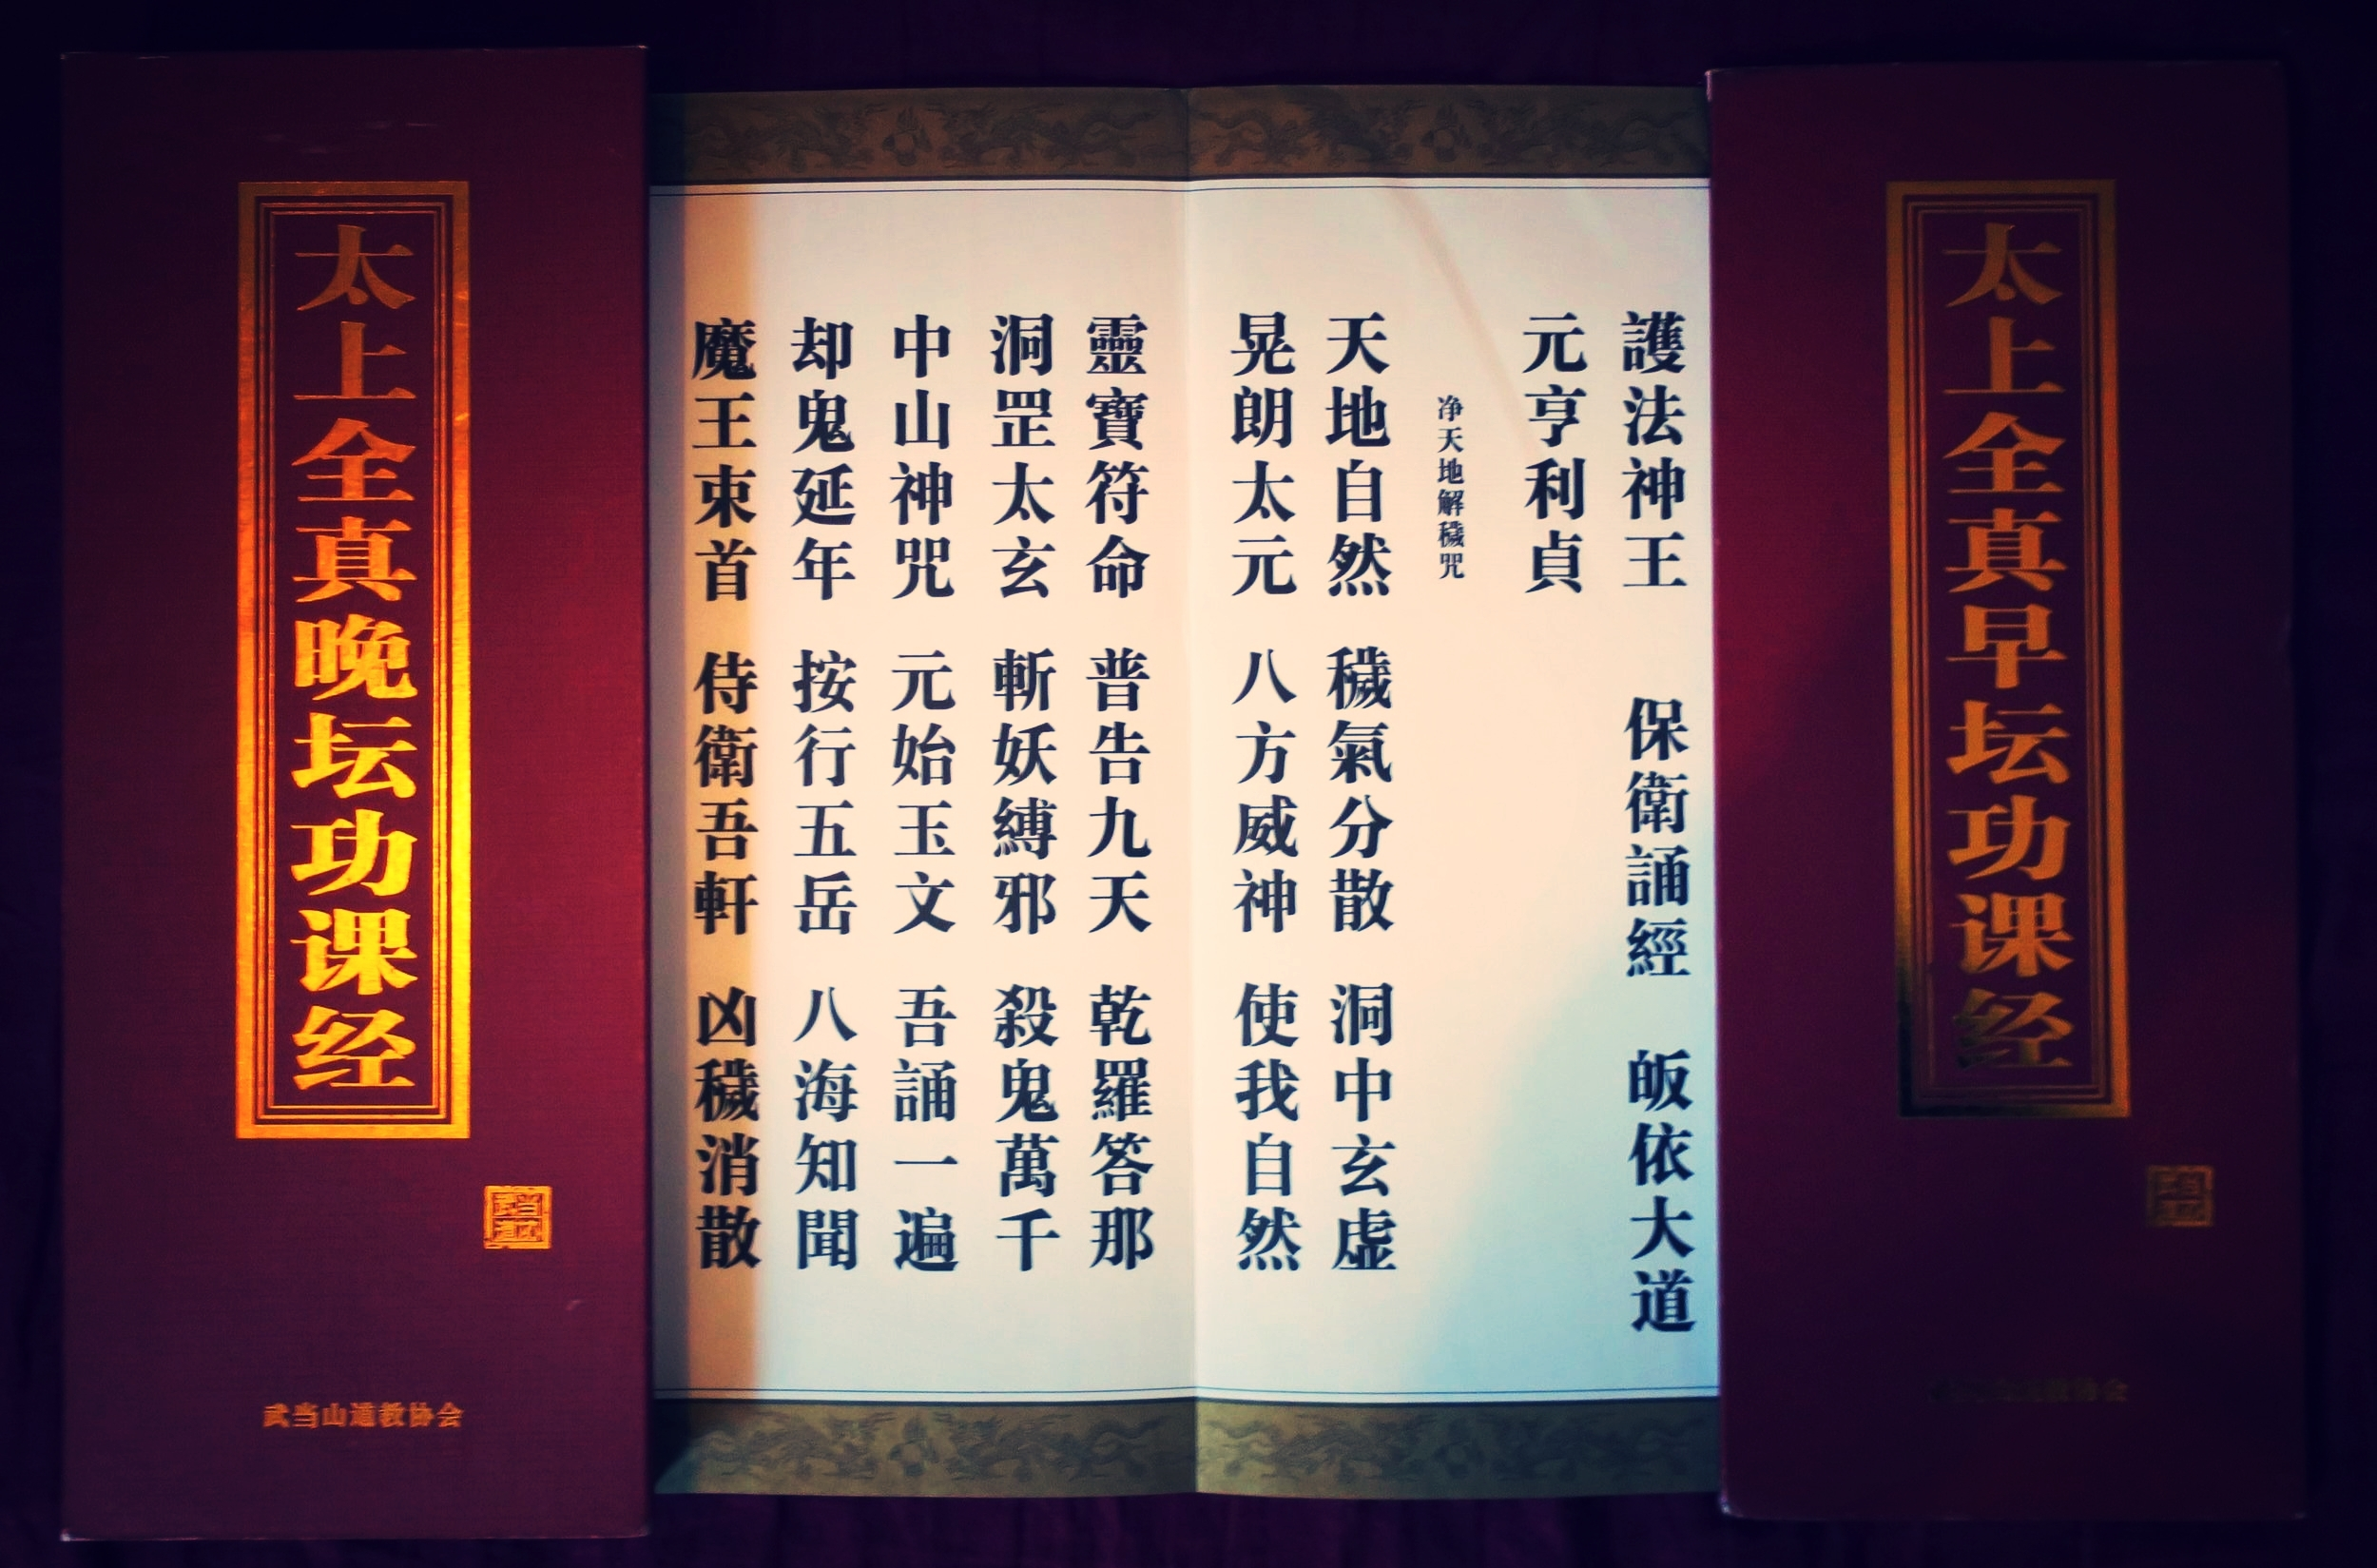 Wudang Press edition of the Quanzhen Morning and Evening Prayers